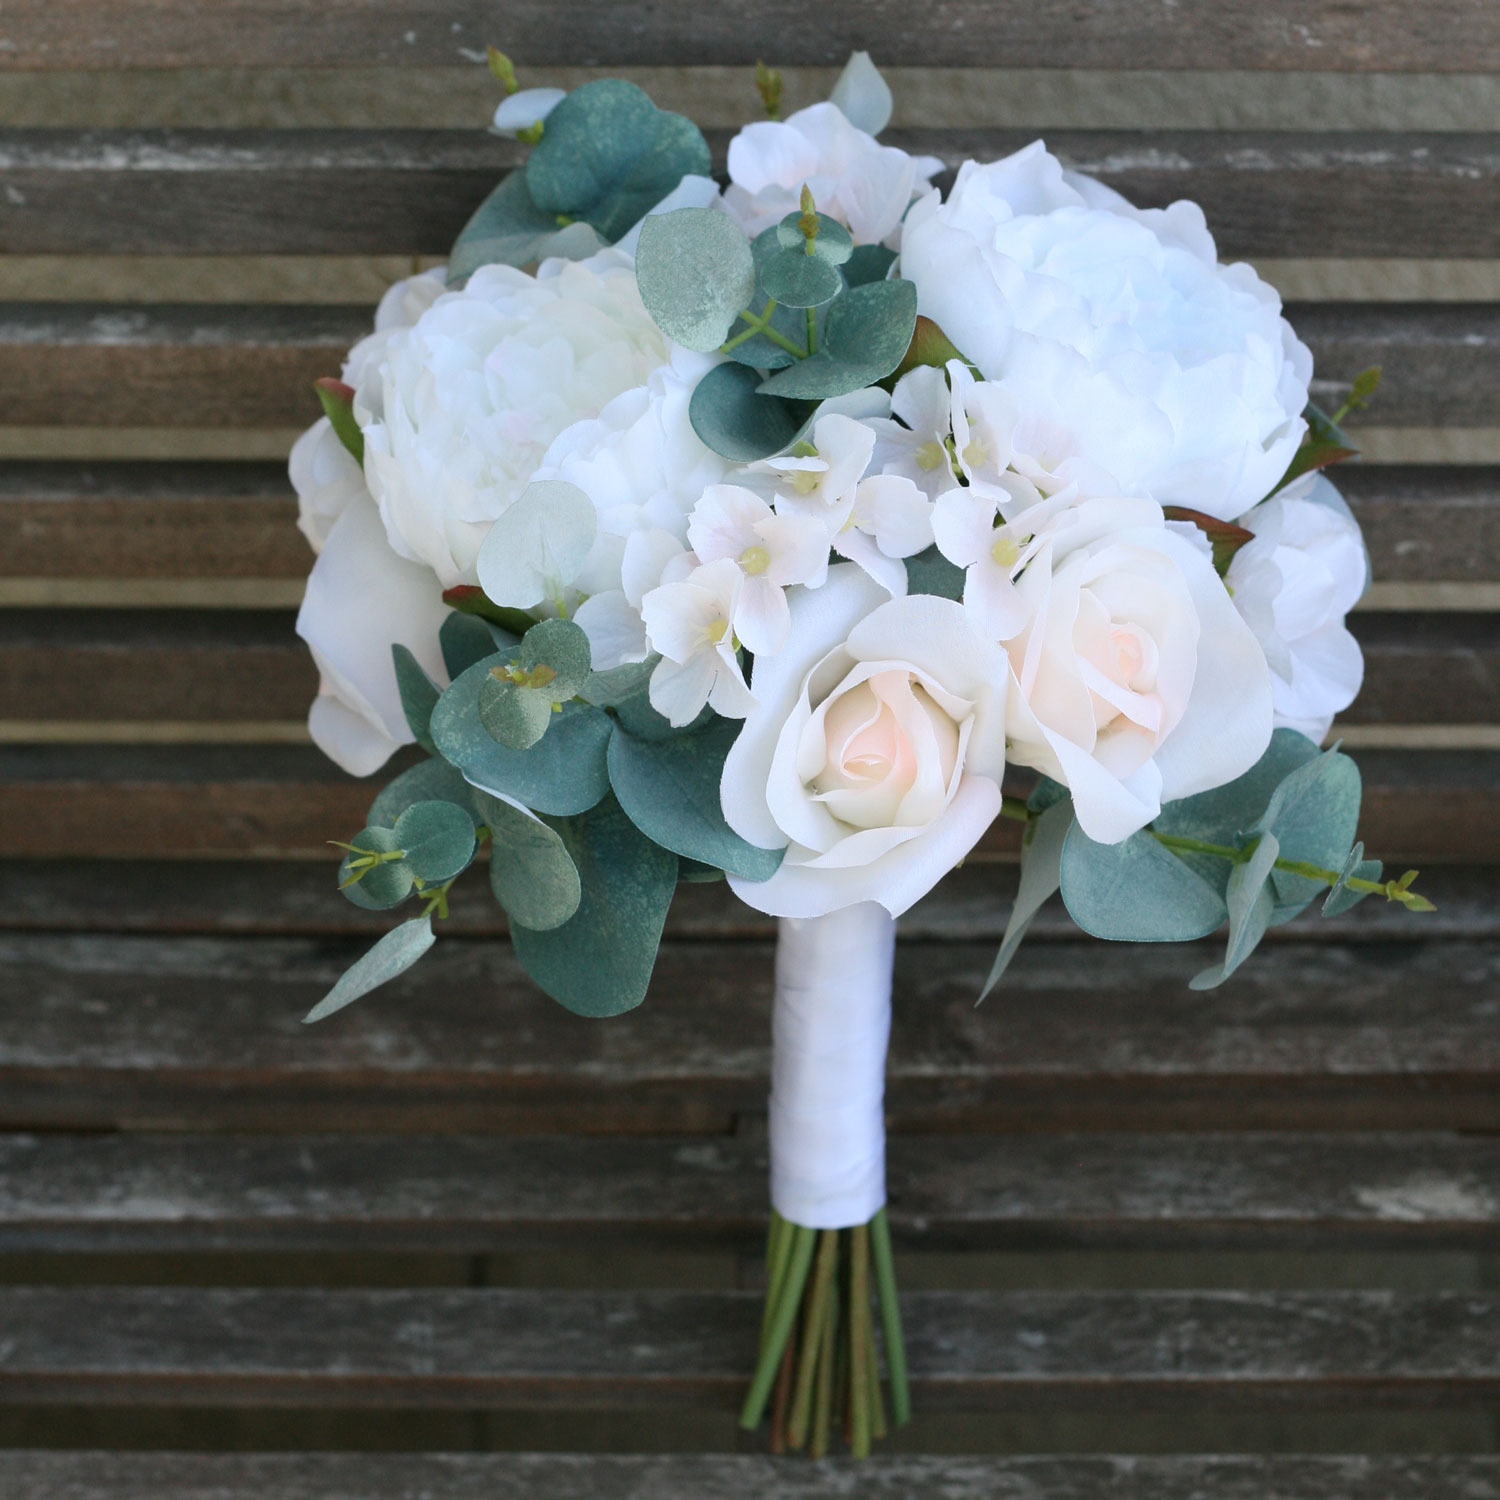 ivory-blush-medium-silk-wedding-bouquets-thebridesbouquet8.jpg